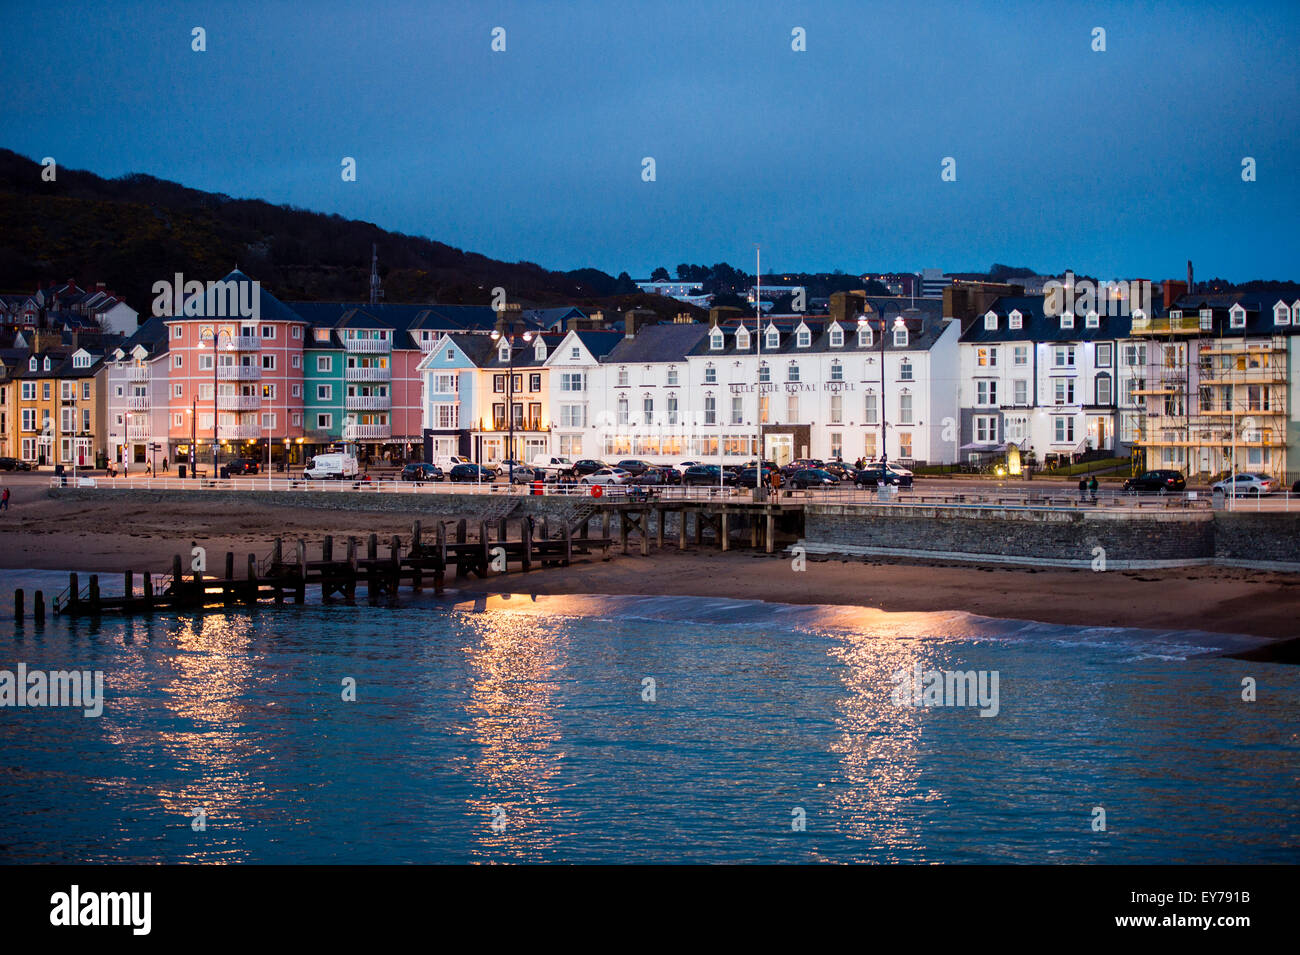 Seaside resort: The Belle Vue Hotel  and promenade at Aberystwyth in the evening, Wales UK - Stock Image